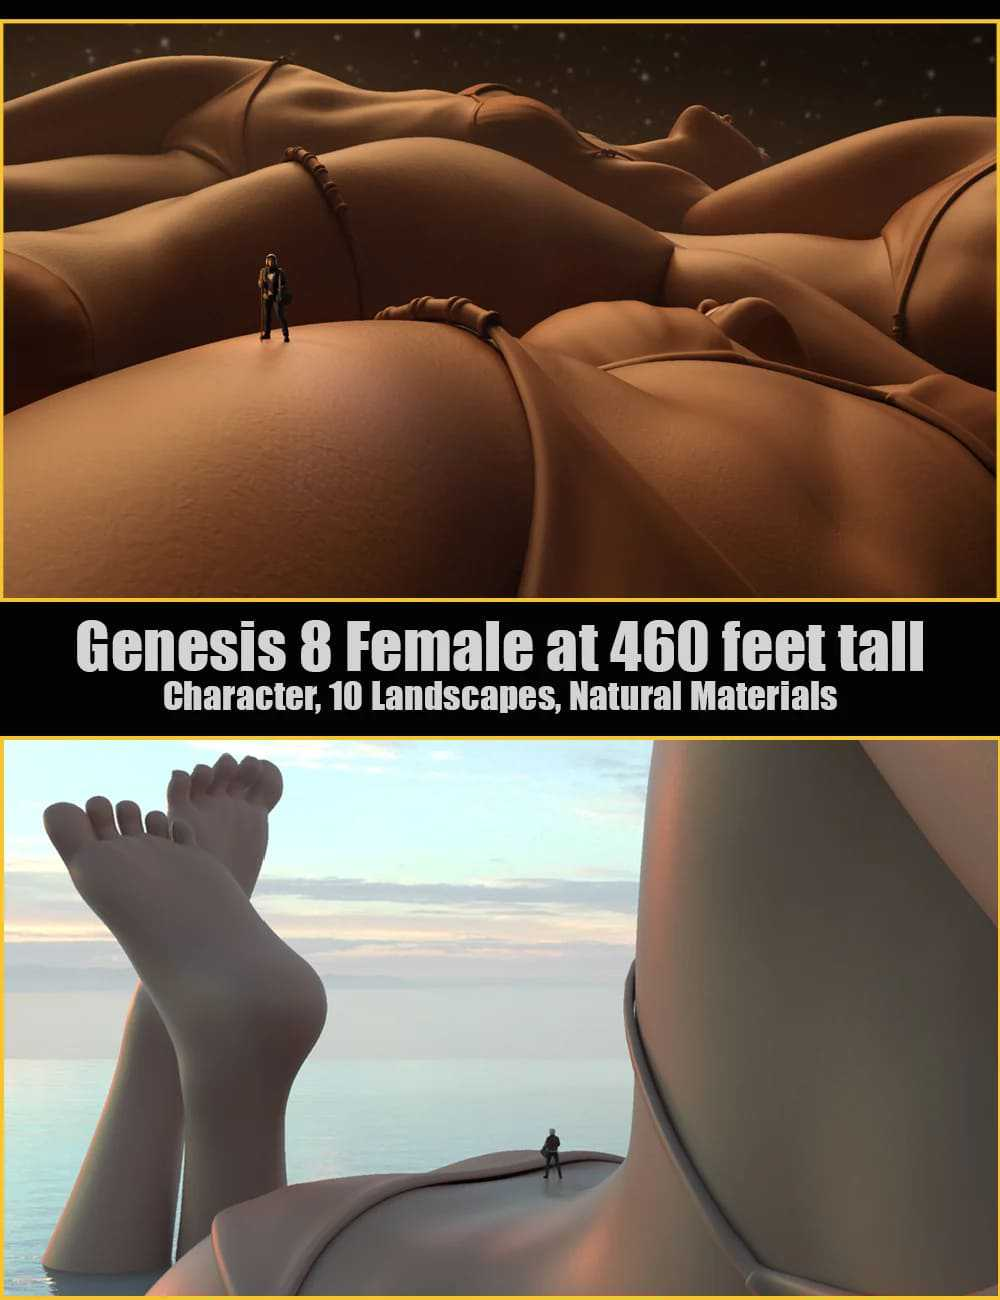 BodyScapes for Genesis 8 Female